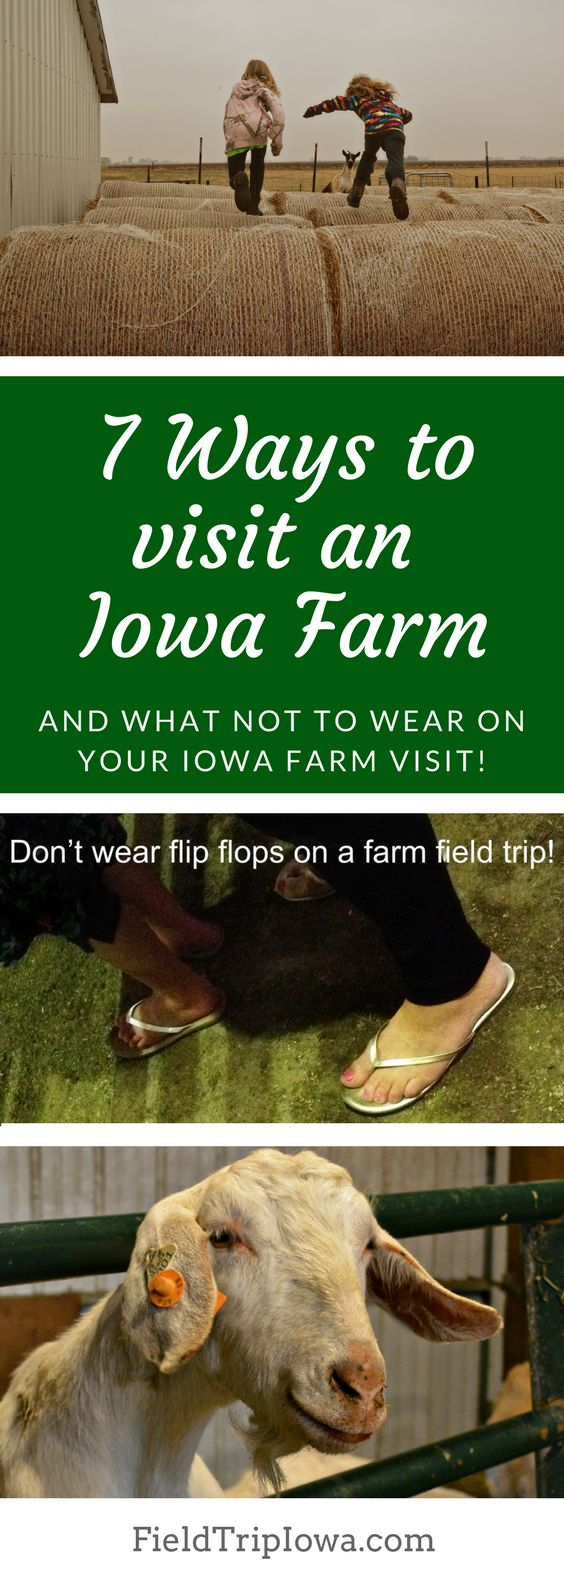 7 Ways to Visit an Iowa Farm and What Not To Wear. Every student in Iowa should have the opportunity to hug a goat and walk in a crop field. http://fieldtripiowa.com/visit-an-iowa-farm/